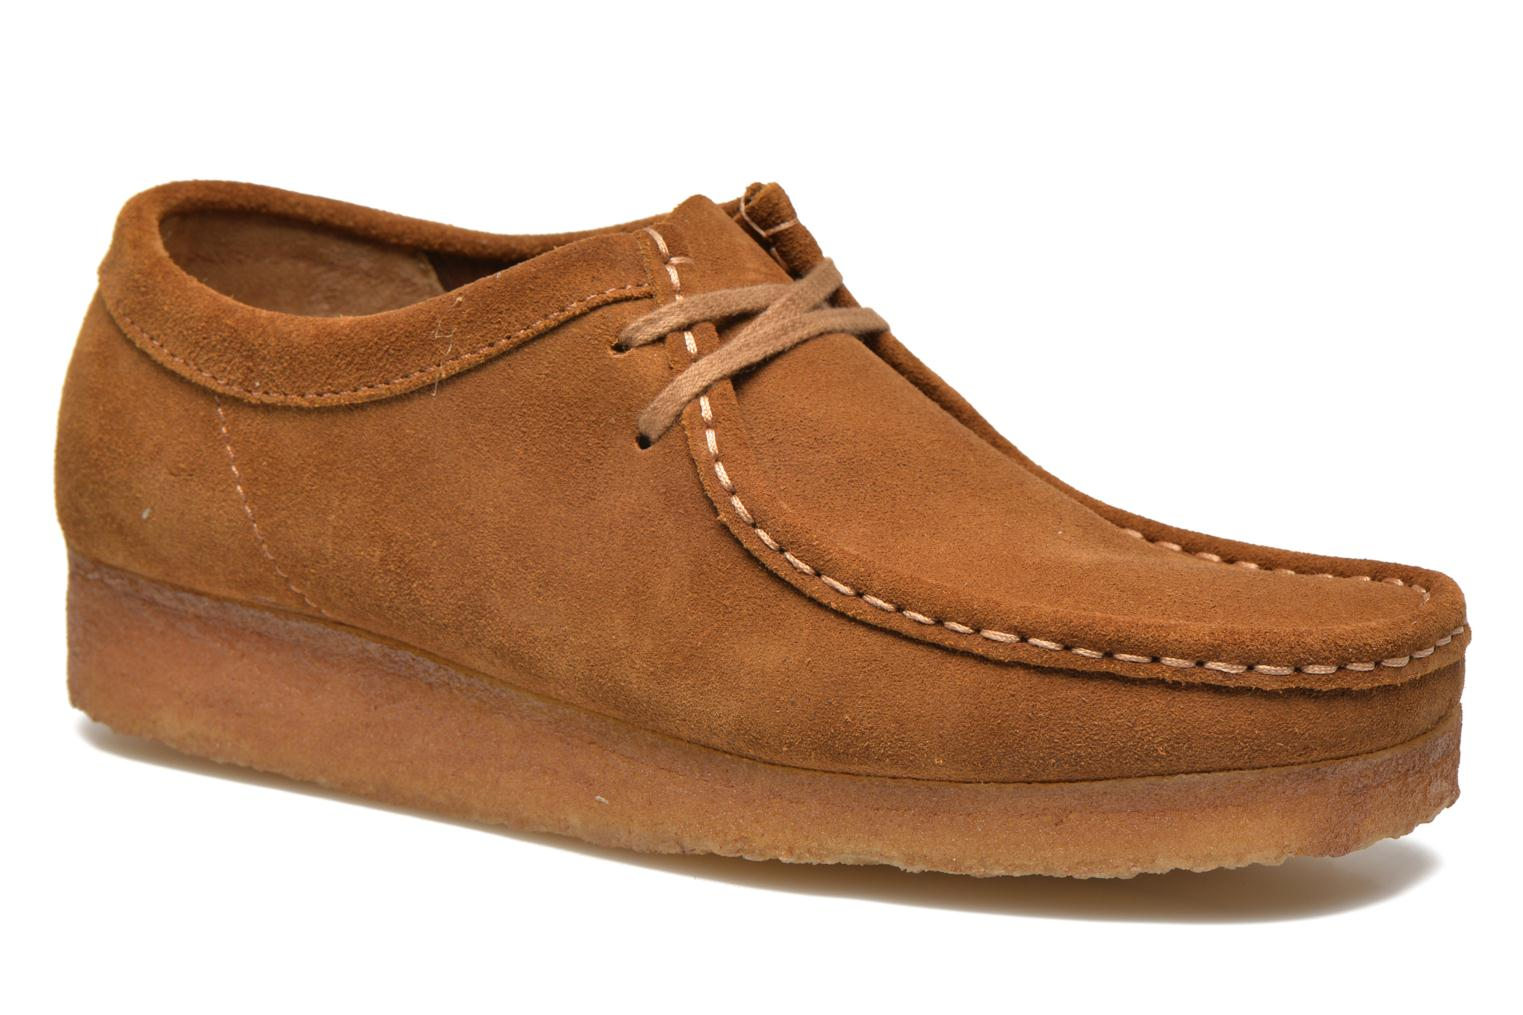 Wallabee by Clarks Originals